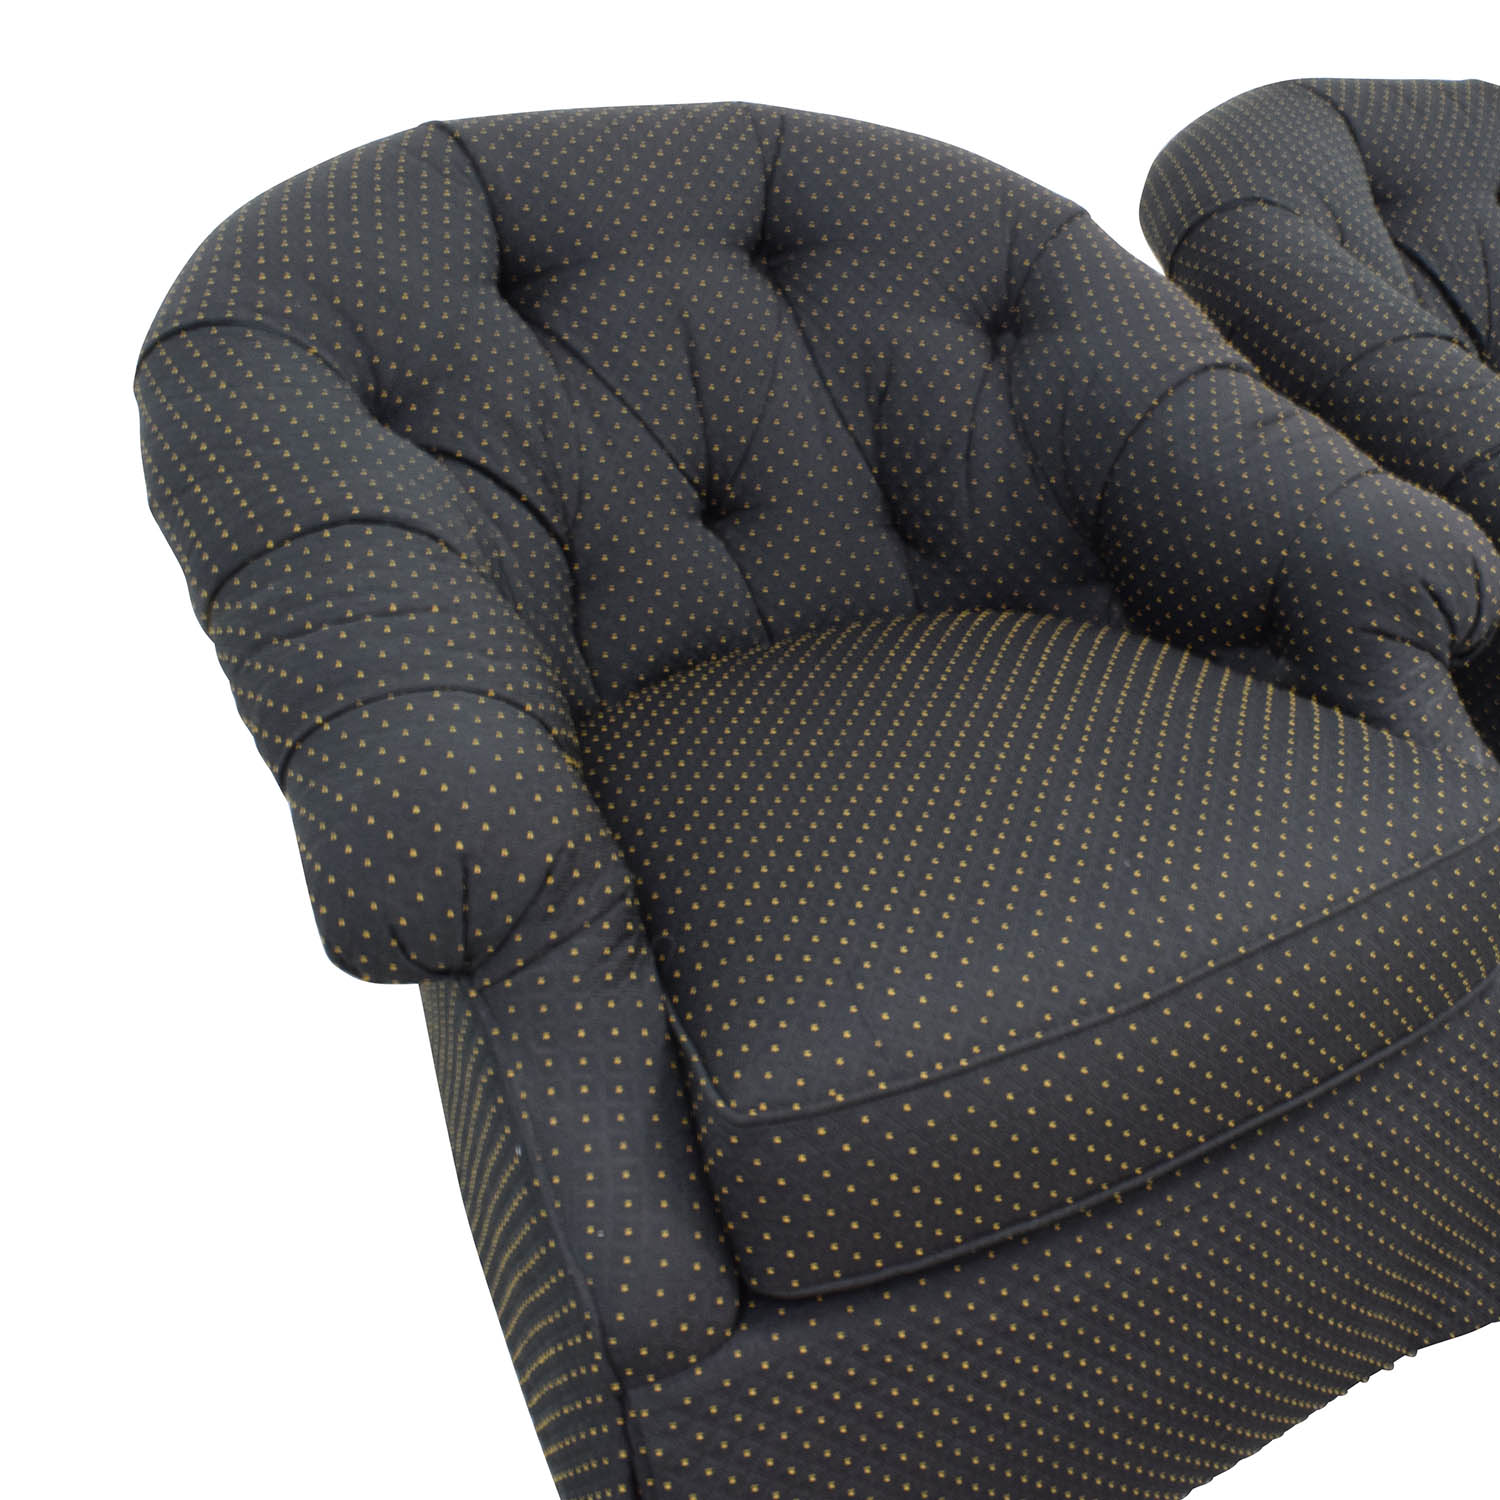 83 off sherrill furniture sherrill furniture gold and black polka dot armchairs chairs. Black Bedroom Furniture Sets. Home Design Ideas